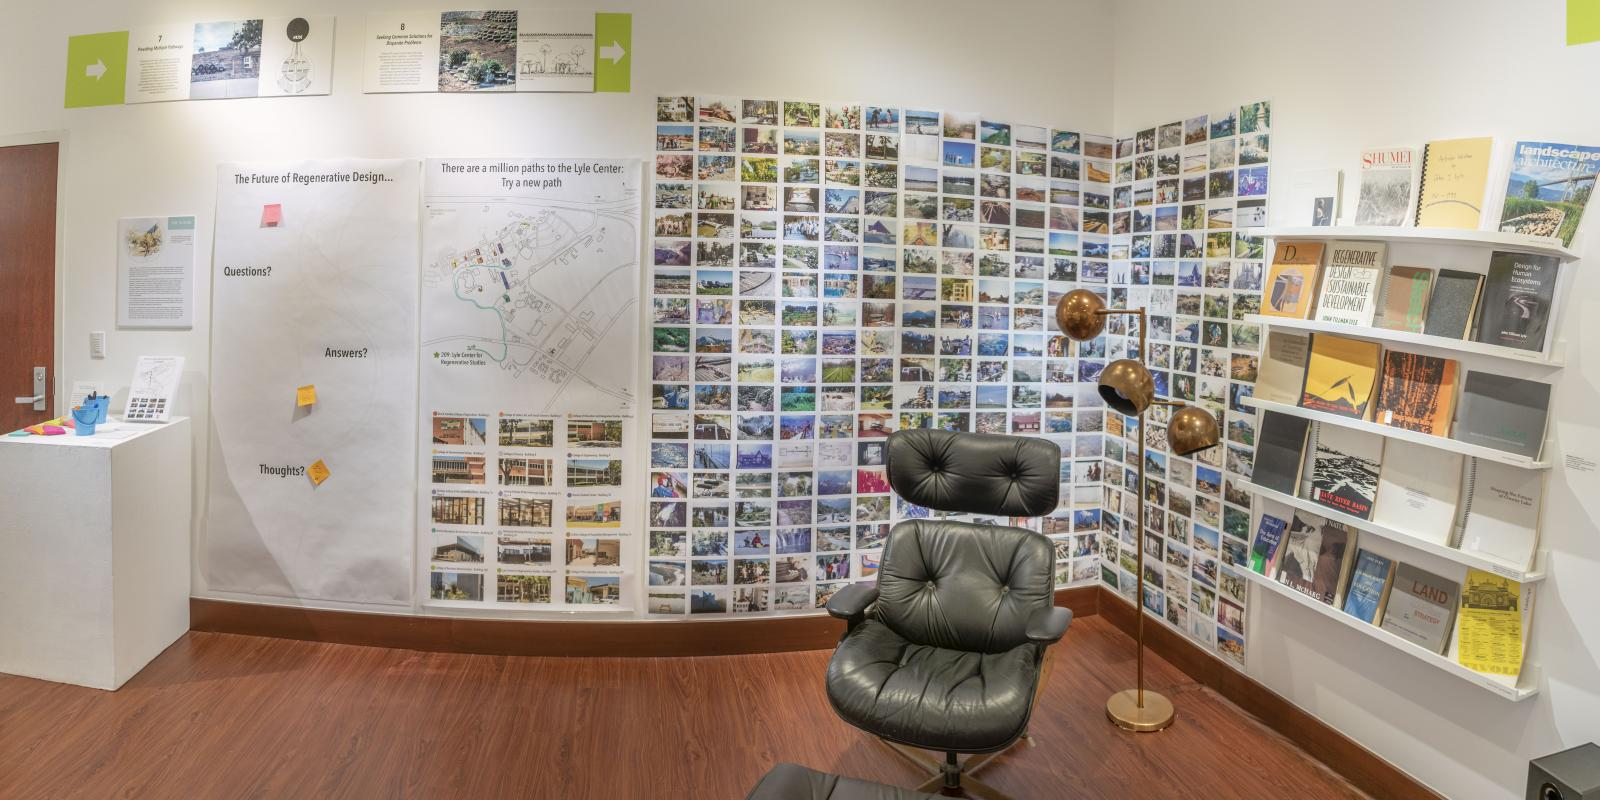 """Installation View, Reading nook at back of gallery, """"John T. Lyle and the Future of Regenerative Design"""" Exhibition, Oct.17, 2019 to Dec.8, 2019, Curator: Cybele Lyle, Don B. Huntley Gallery, Cal Poly Pomona."""